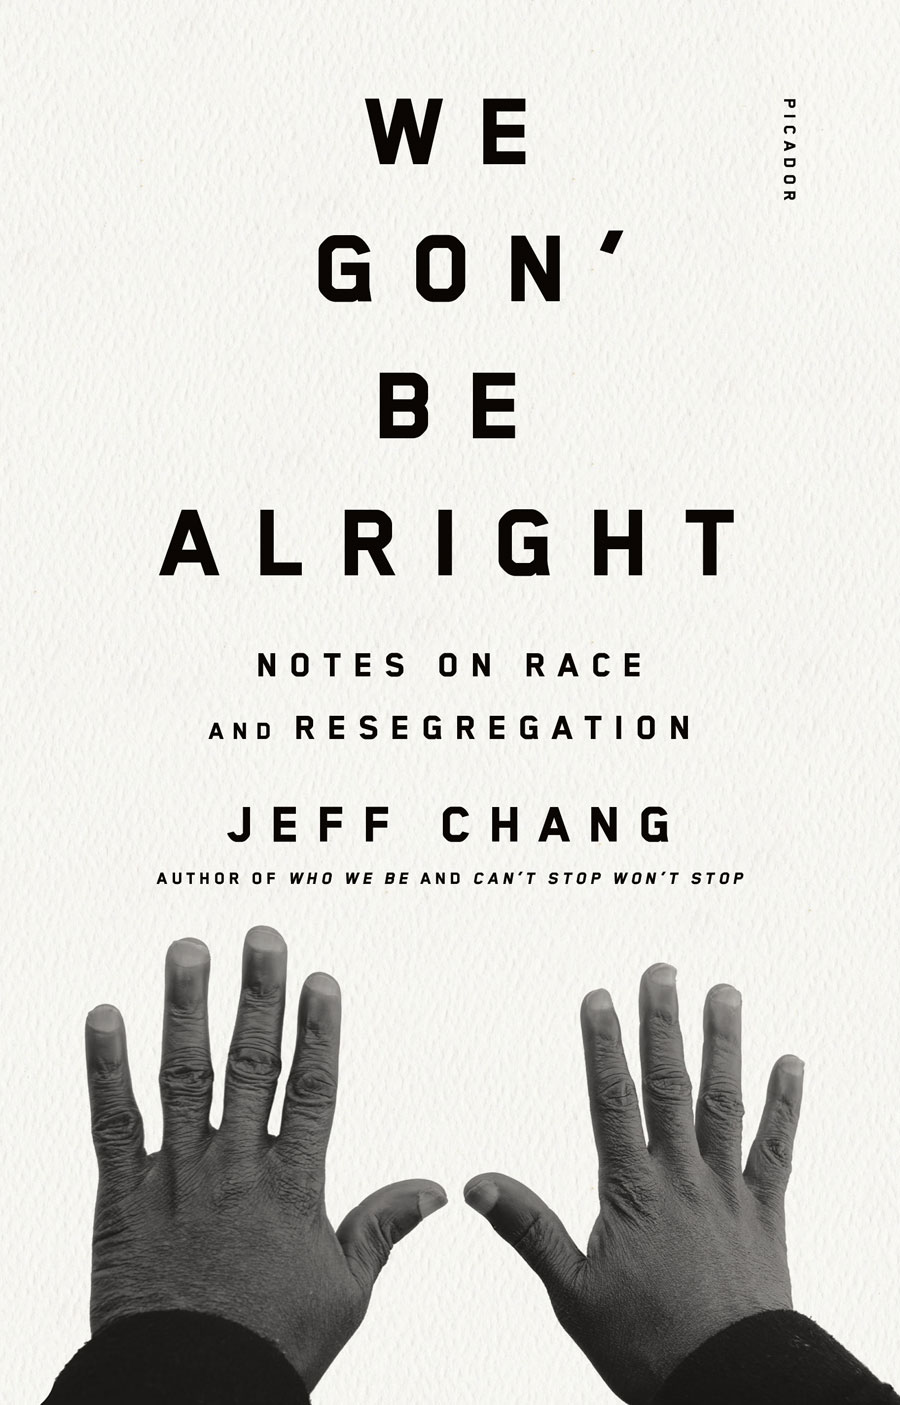 We Gon Be Alright: Notes on Race and Resegregation by Jeff Chang